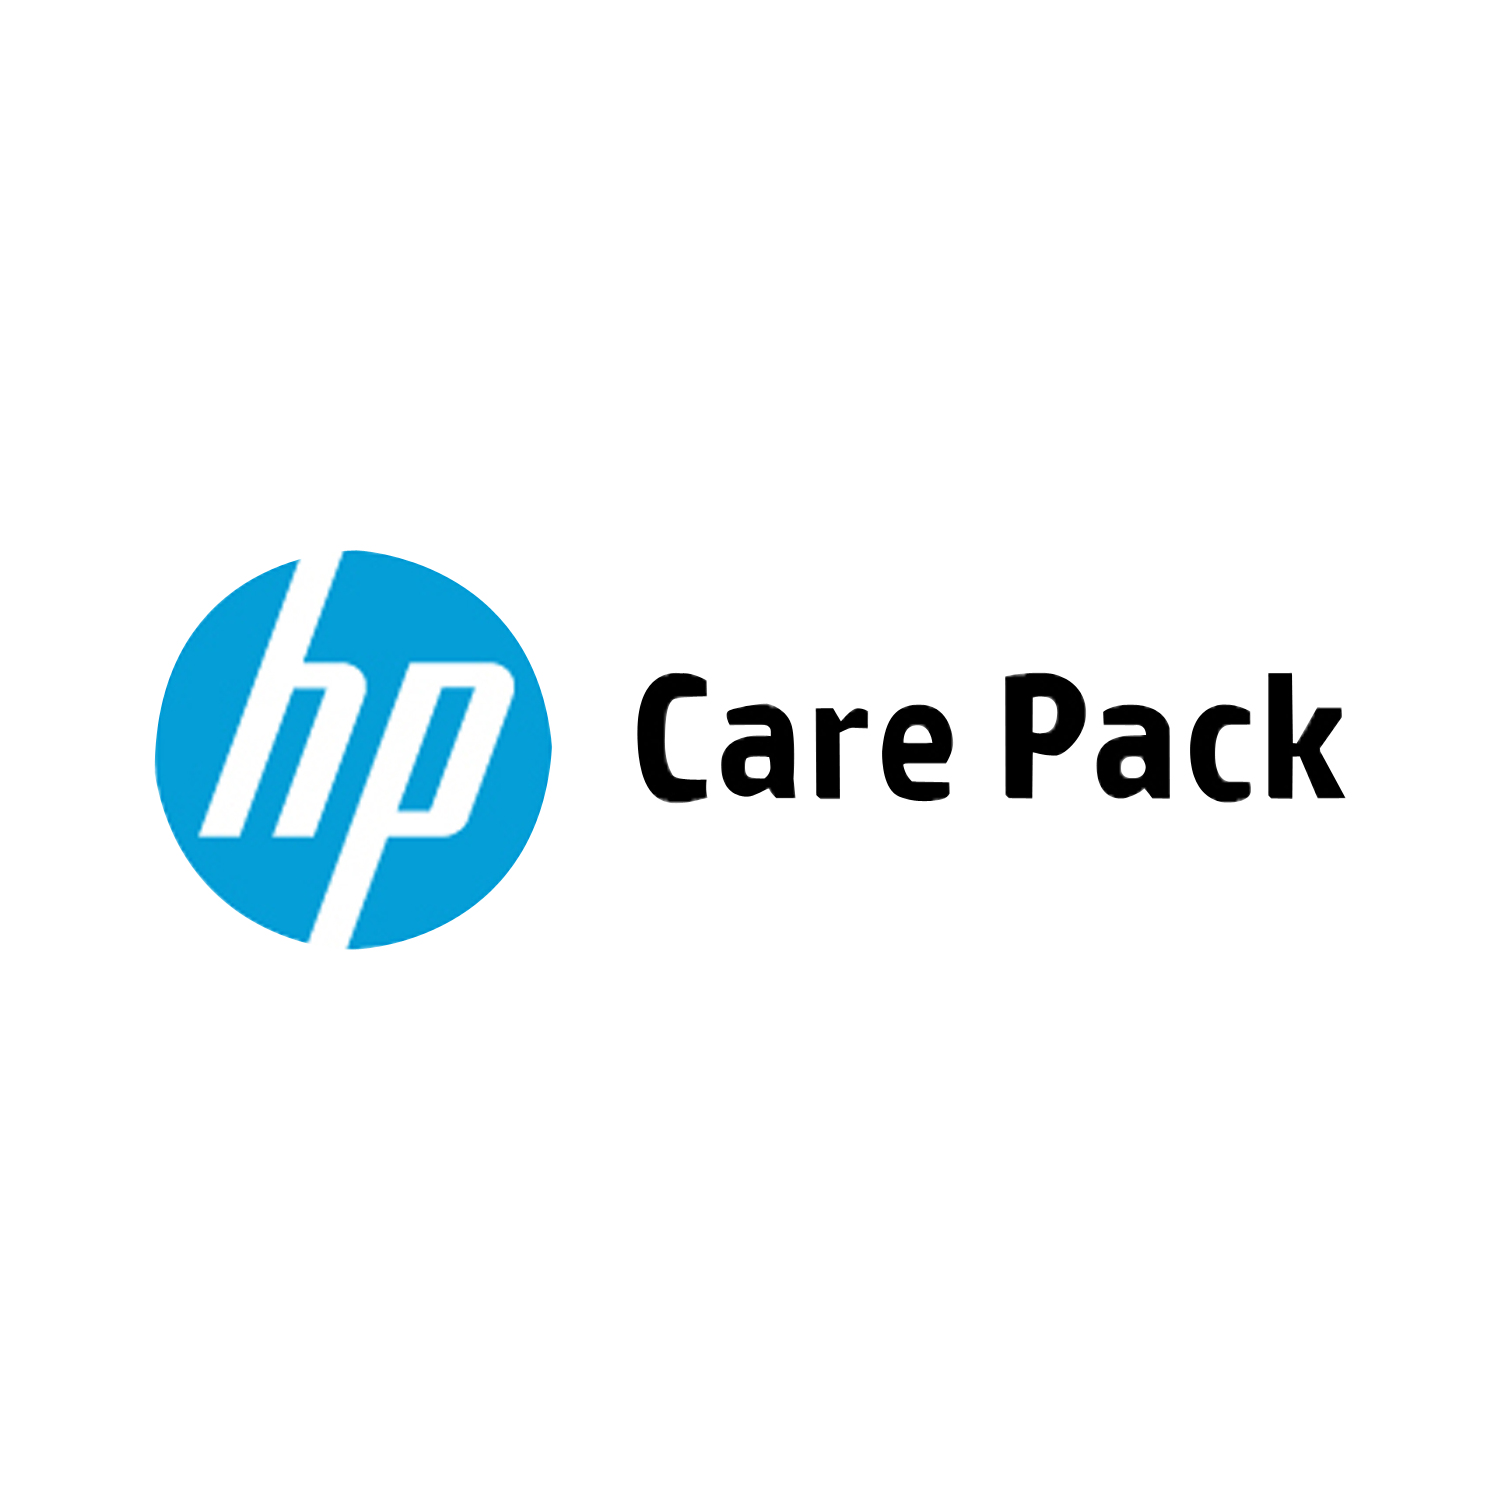 HP Care Pack Next Business Day Hardware Support - Extended Service Agreement - Parts And Labour - 3 Years - On-site - 9x5 - Response Time: NBD - For Color LaserJet Pro MFP M377fdw, MFP M477fd - C2000